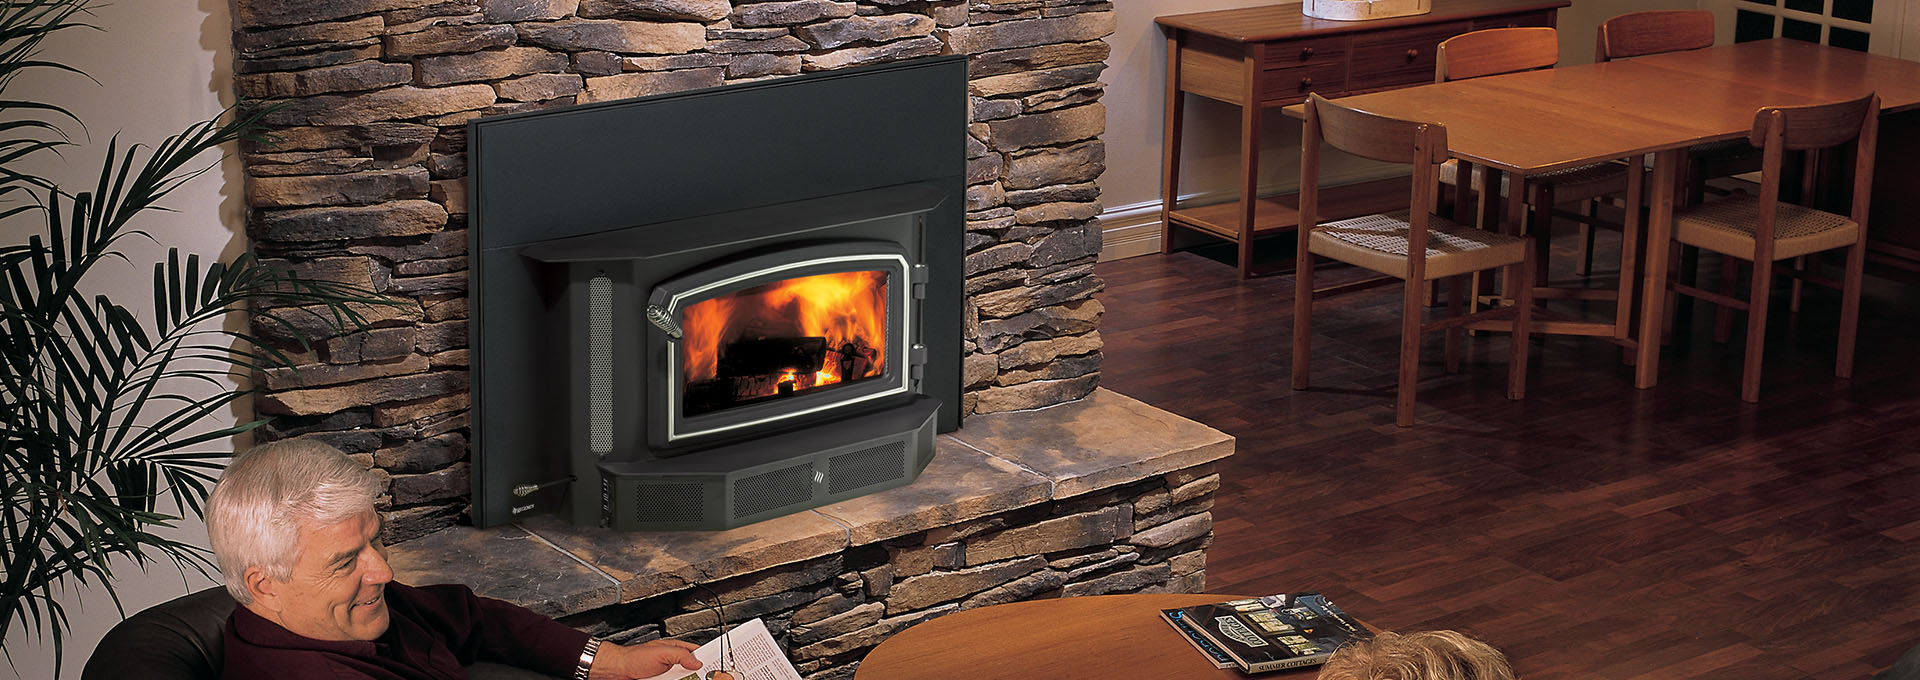 wood room fireplace burning me trendesire ideas living inspiration modern inserts insert